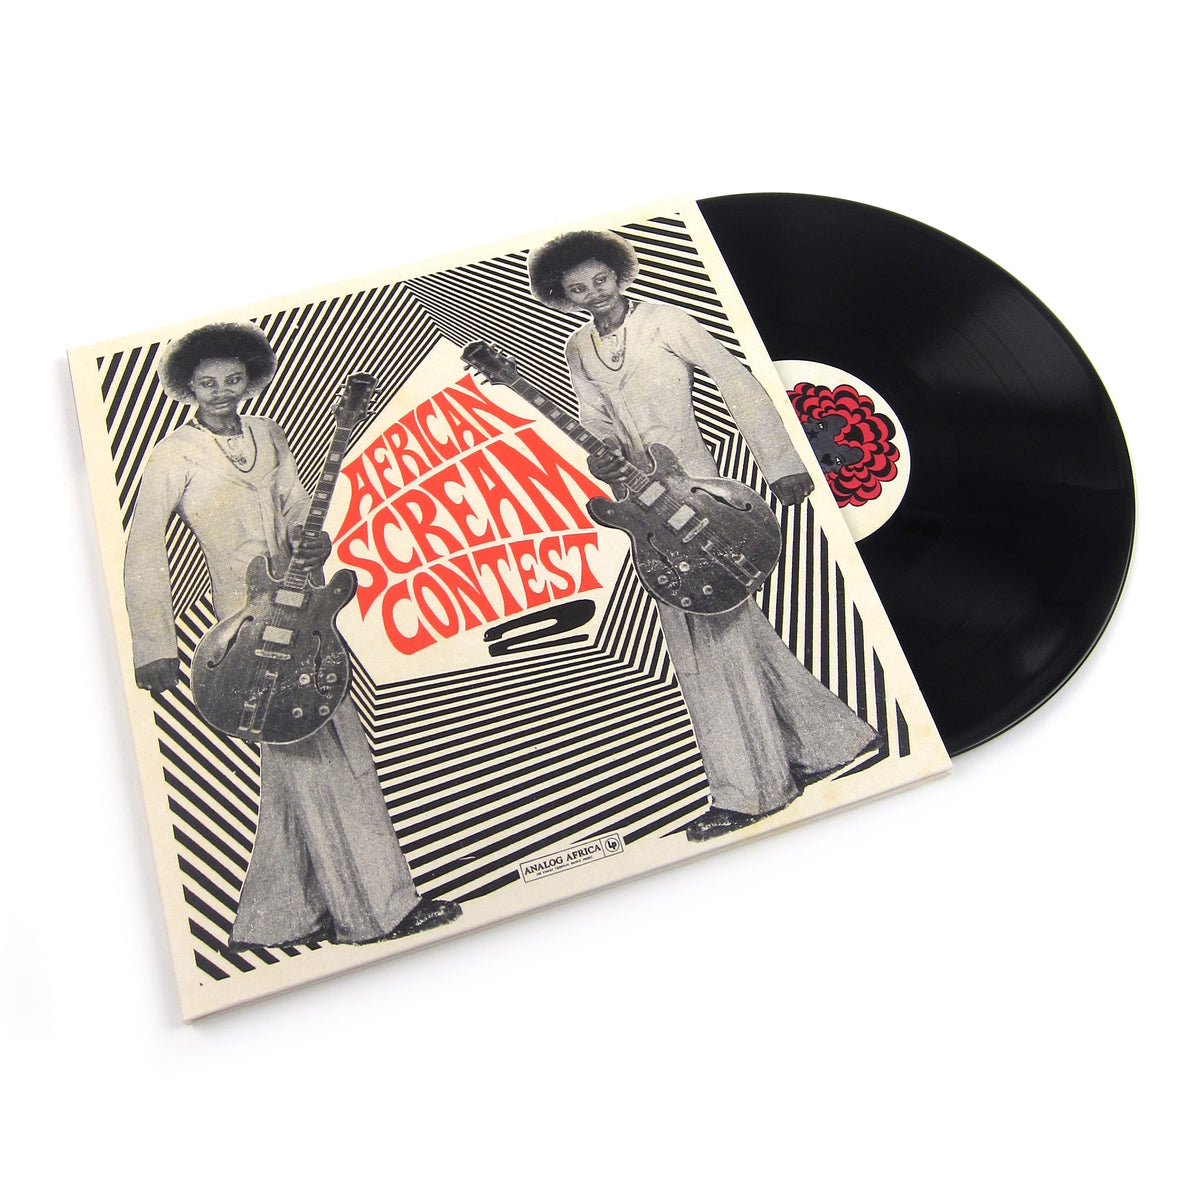 Analog Africa: African Scream Contest 2 Vinyl 2LP